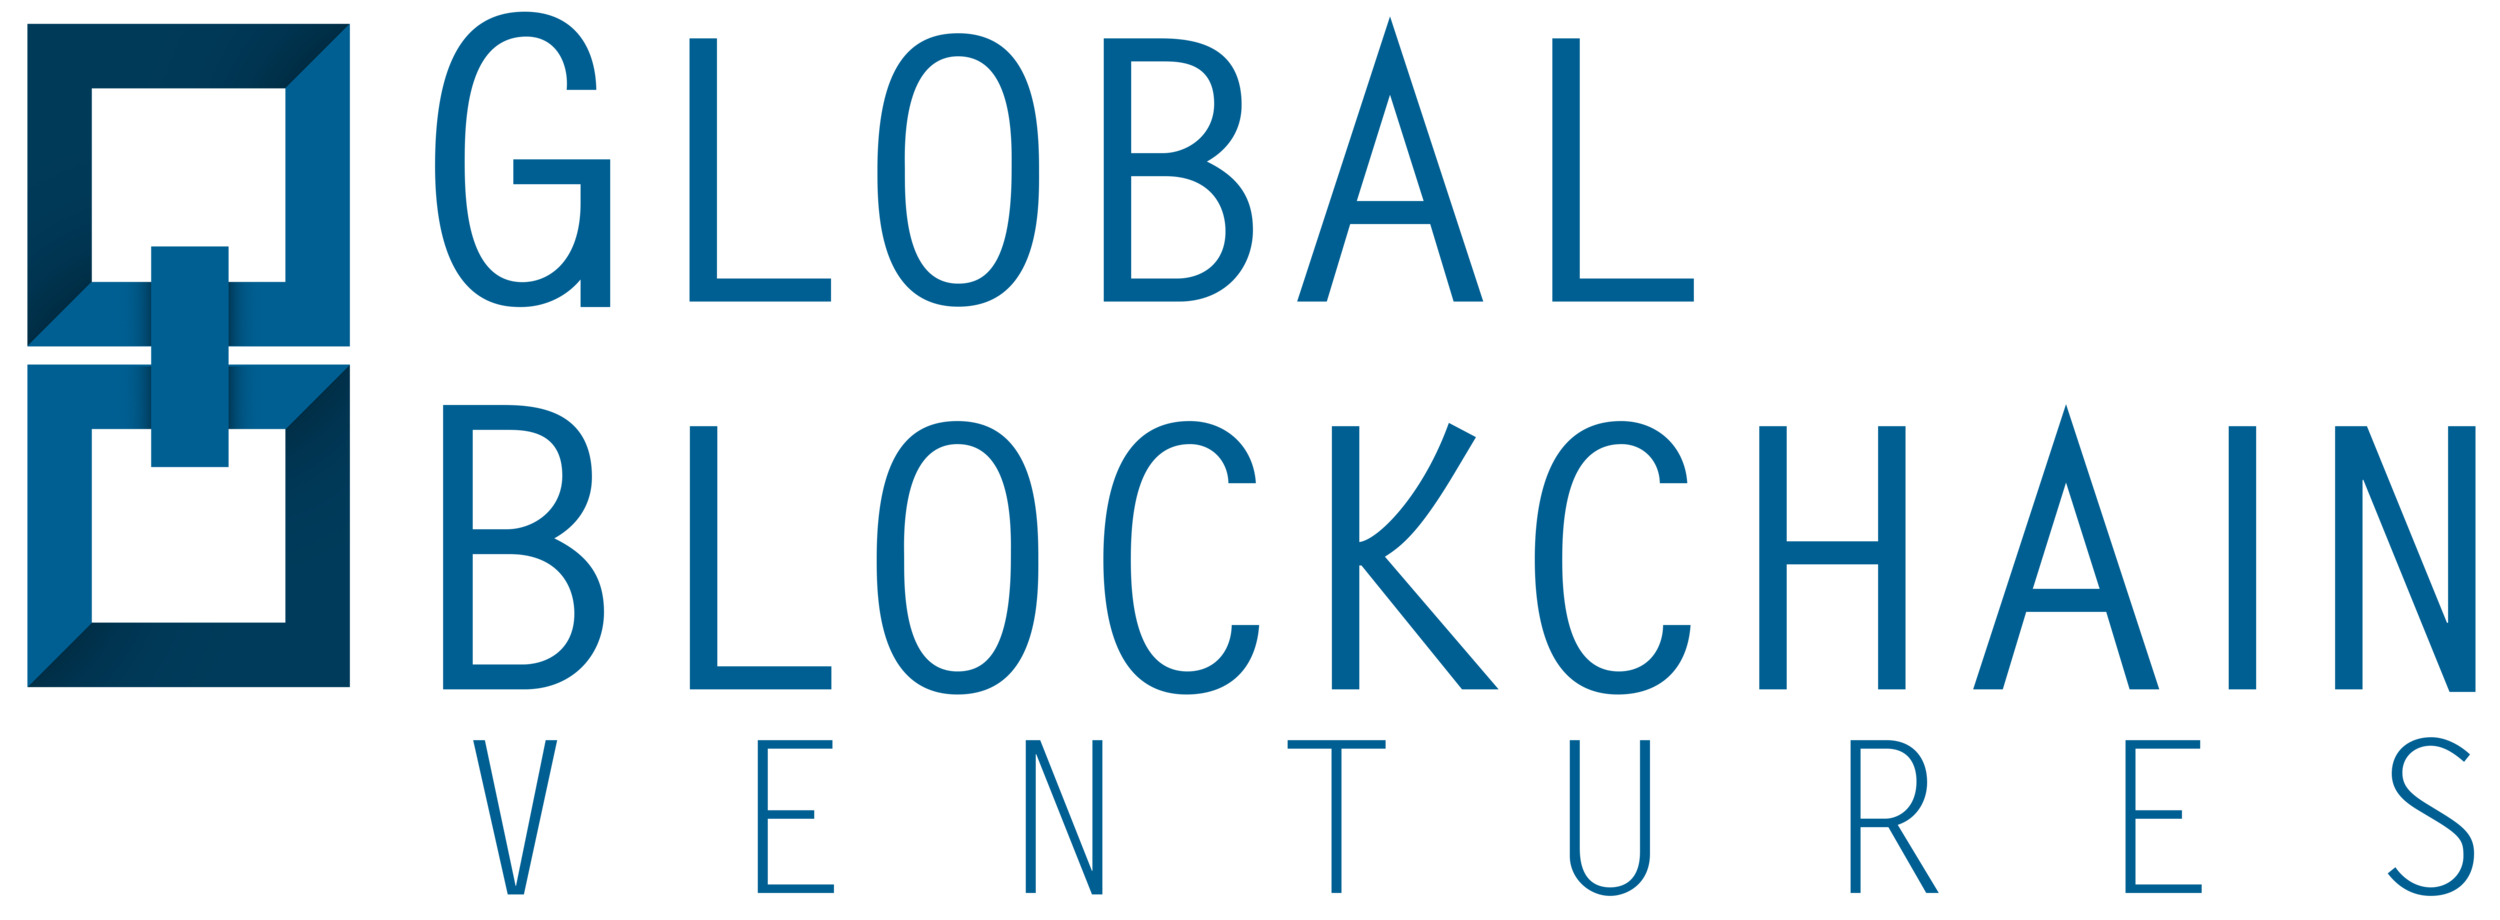 Global Blockchain Ventures.png